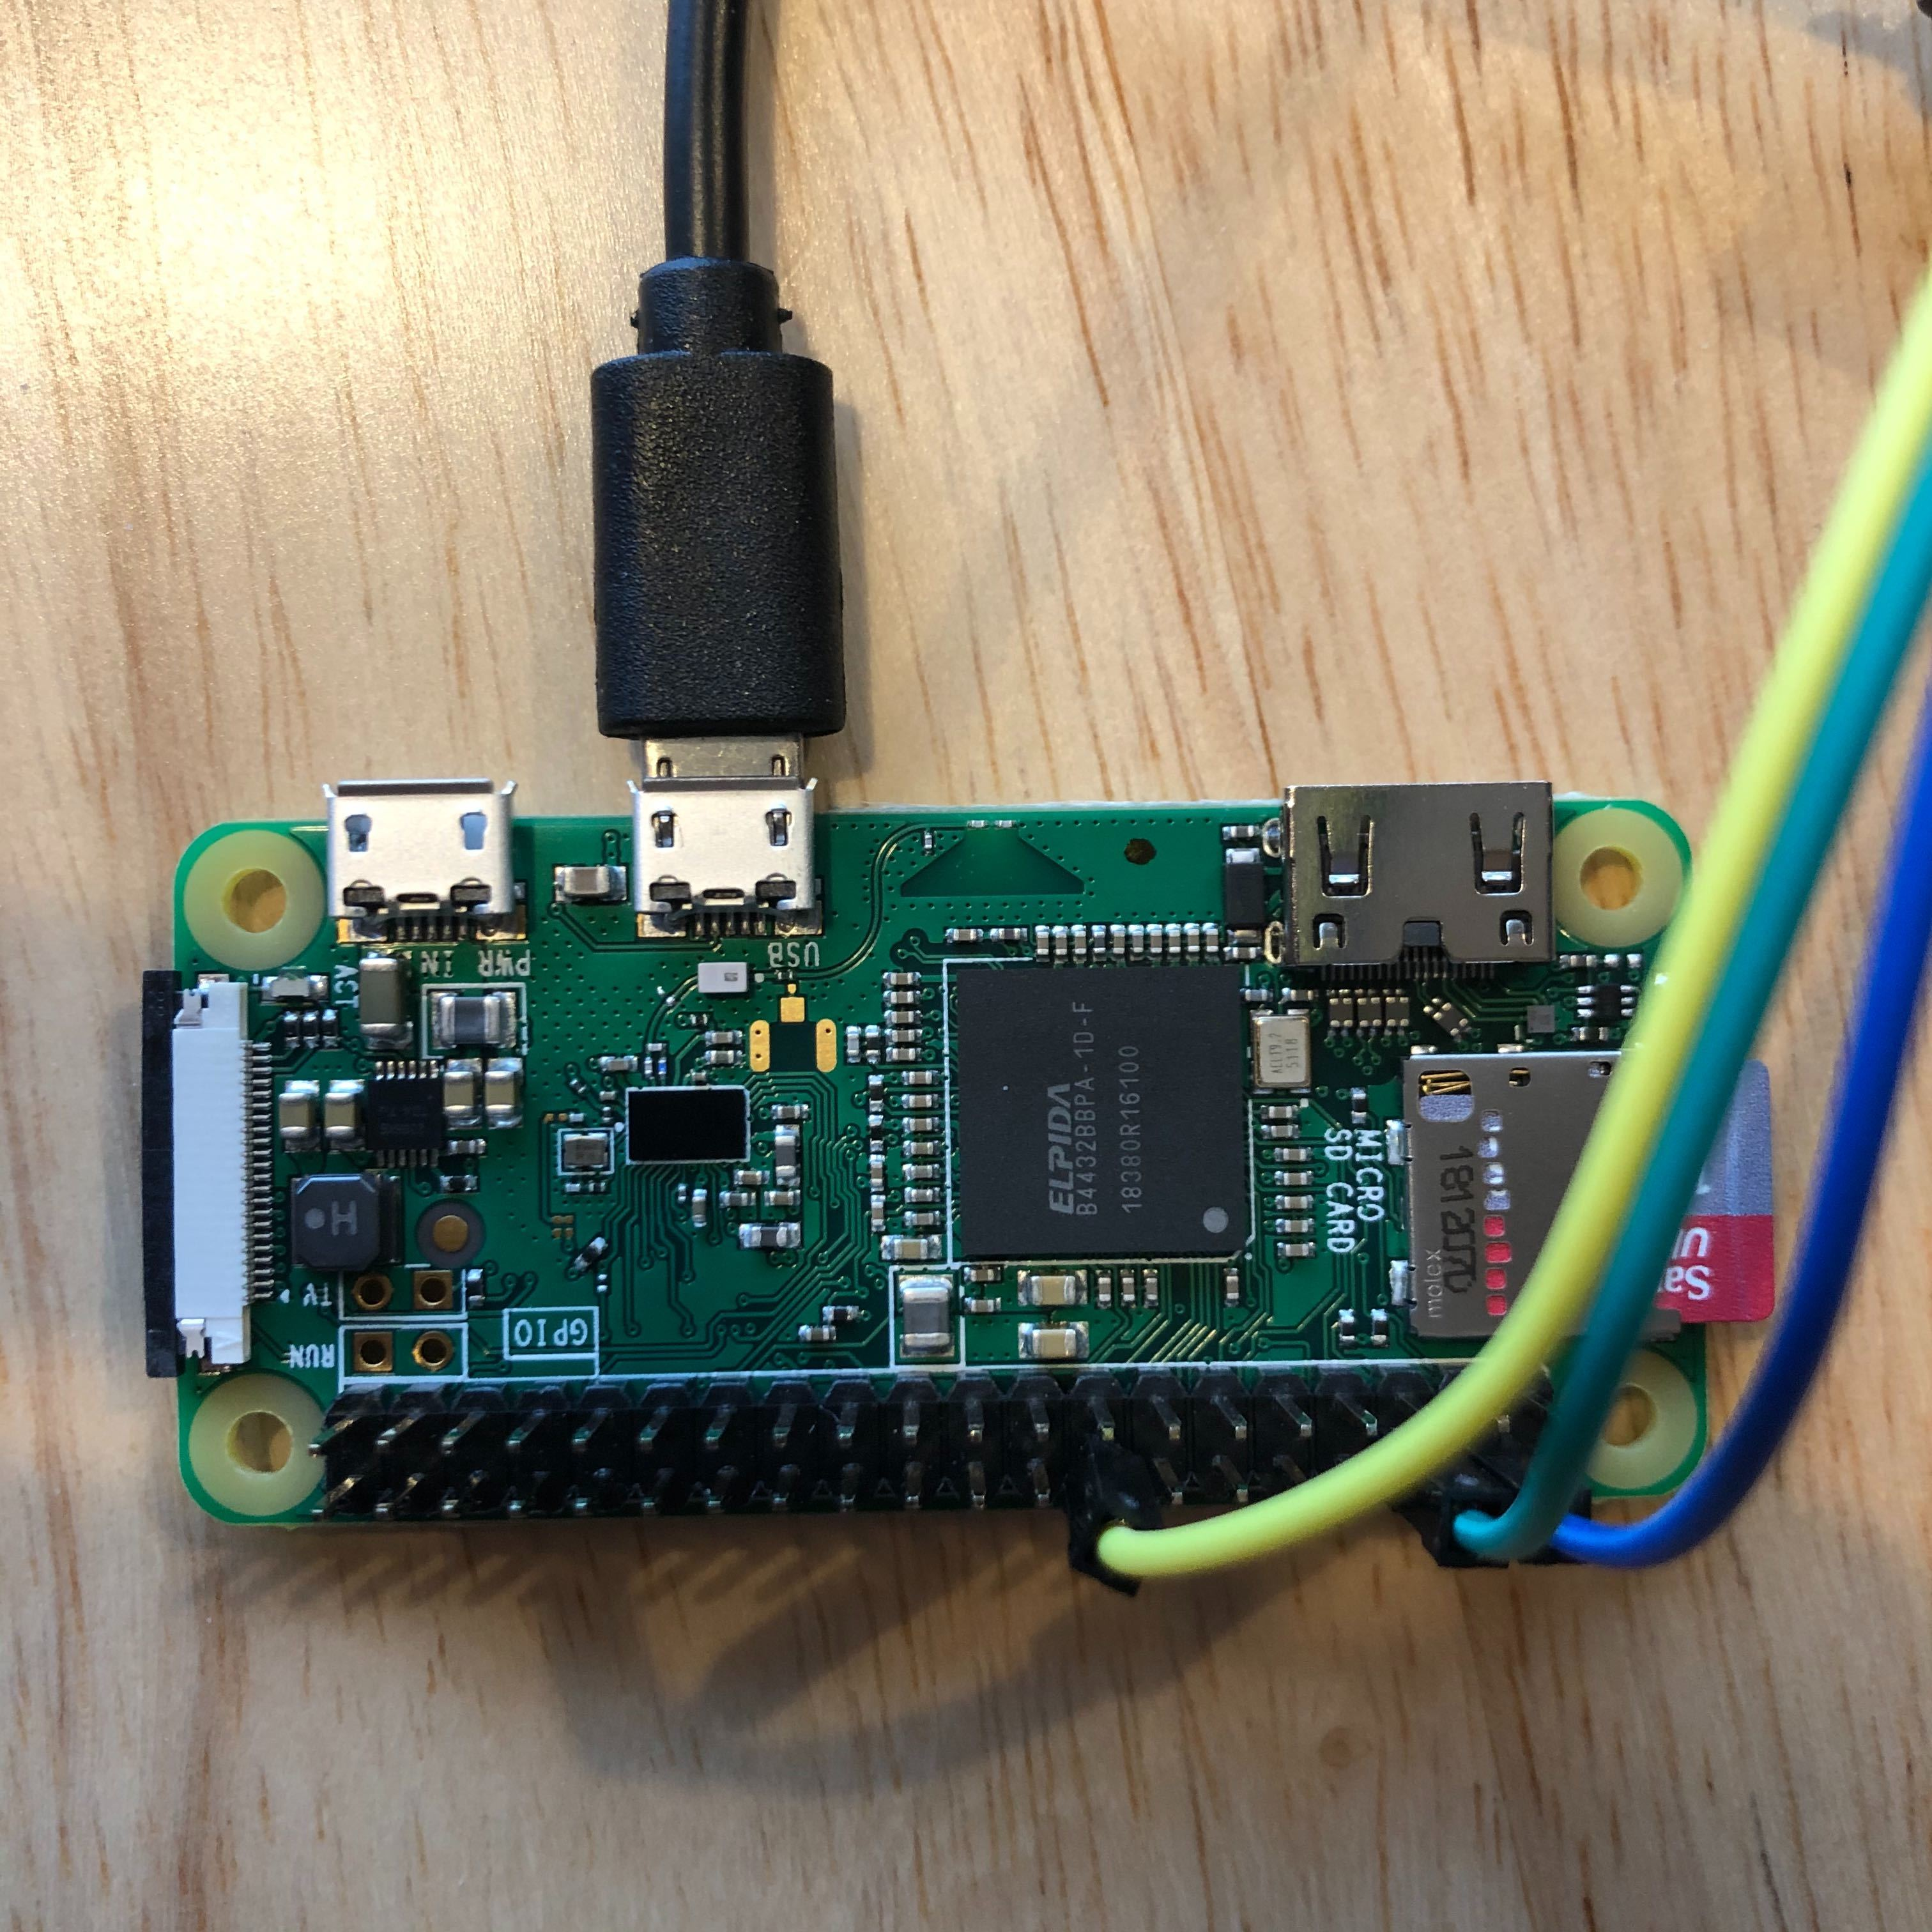 How to connect to your Pi